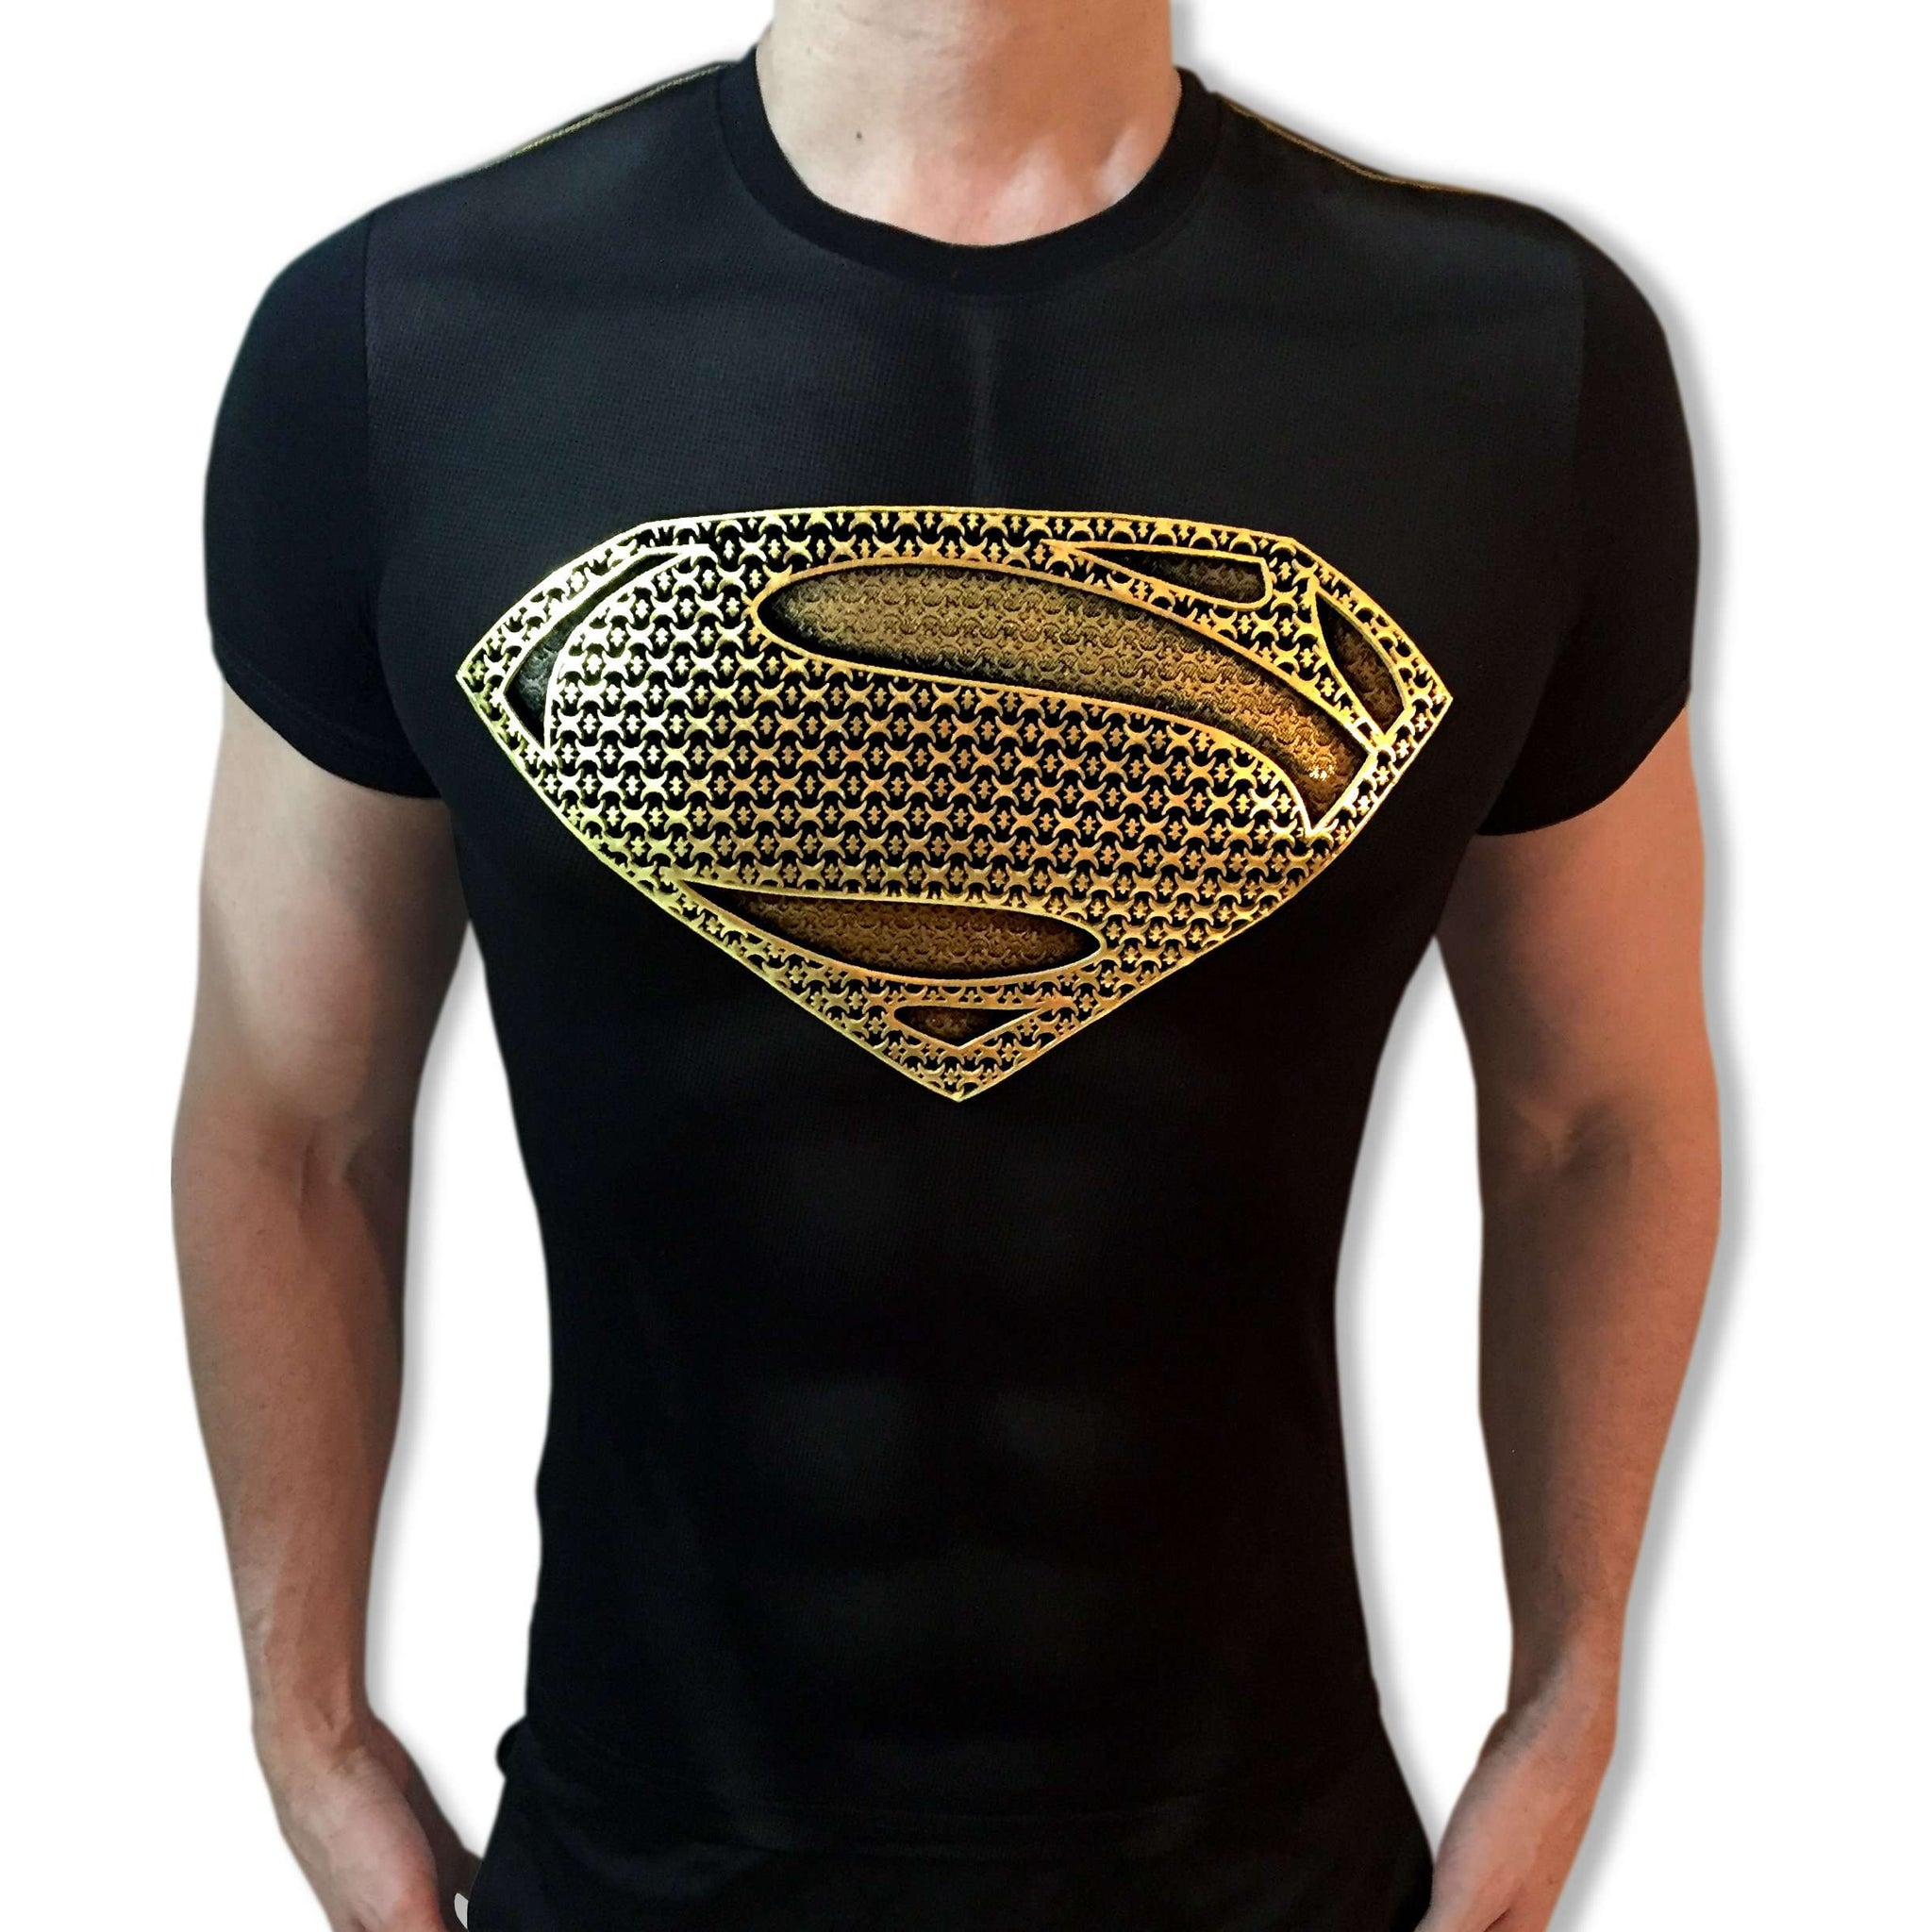 Superman Gold Shield t-shirt SugarCane1977 tshirt shirt t-shirt tee - SugarCane1977